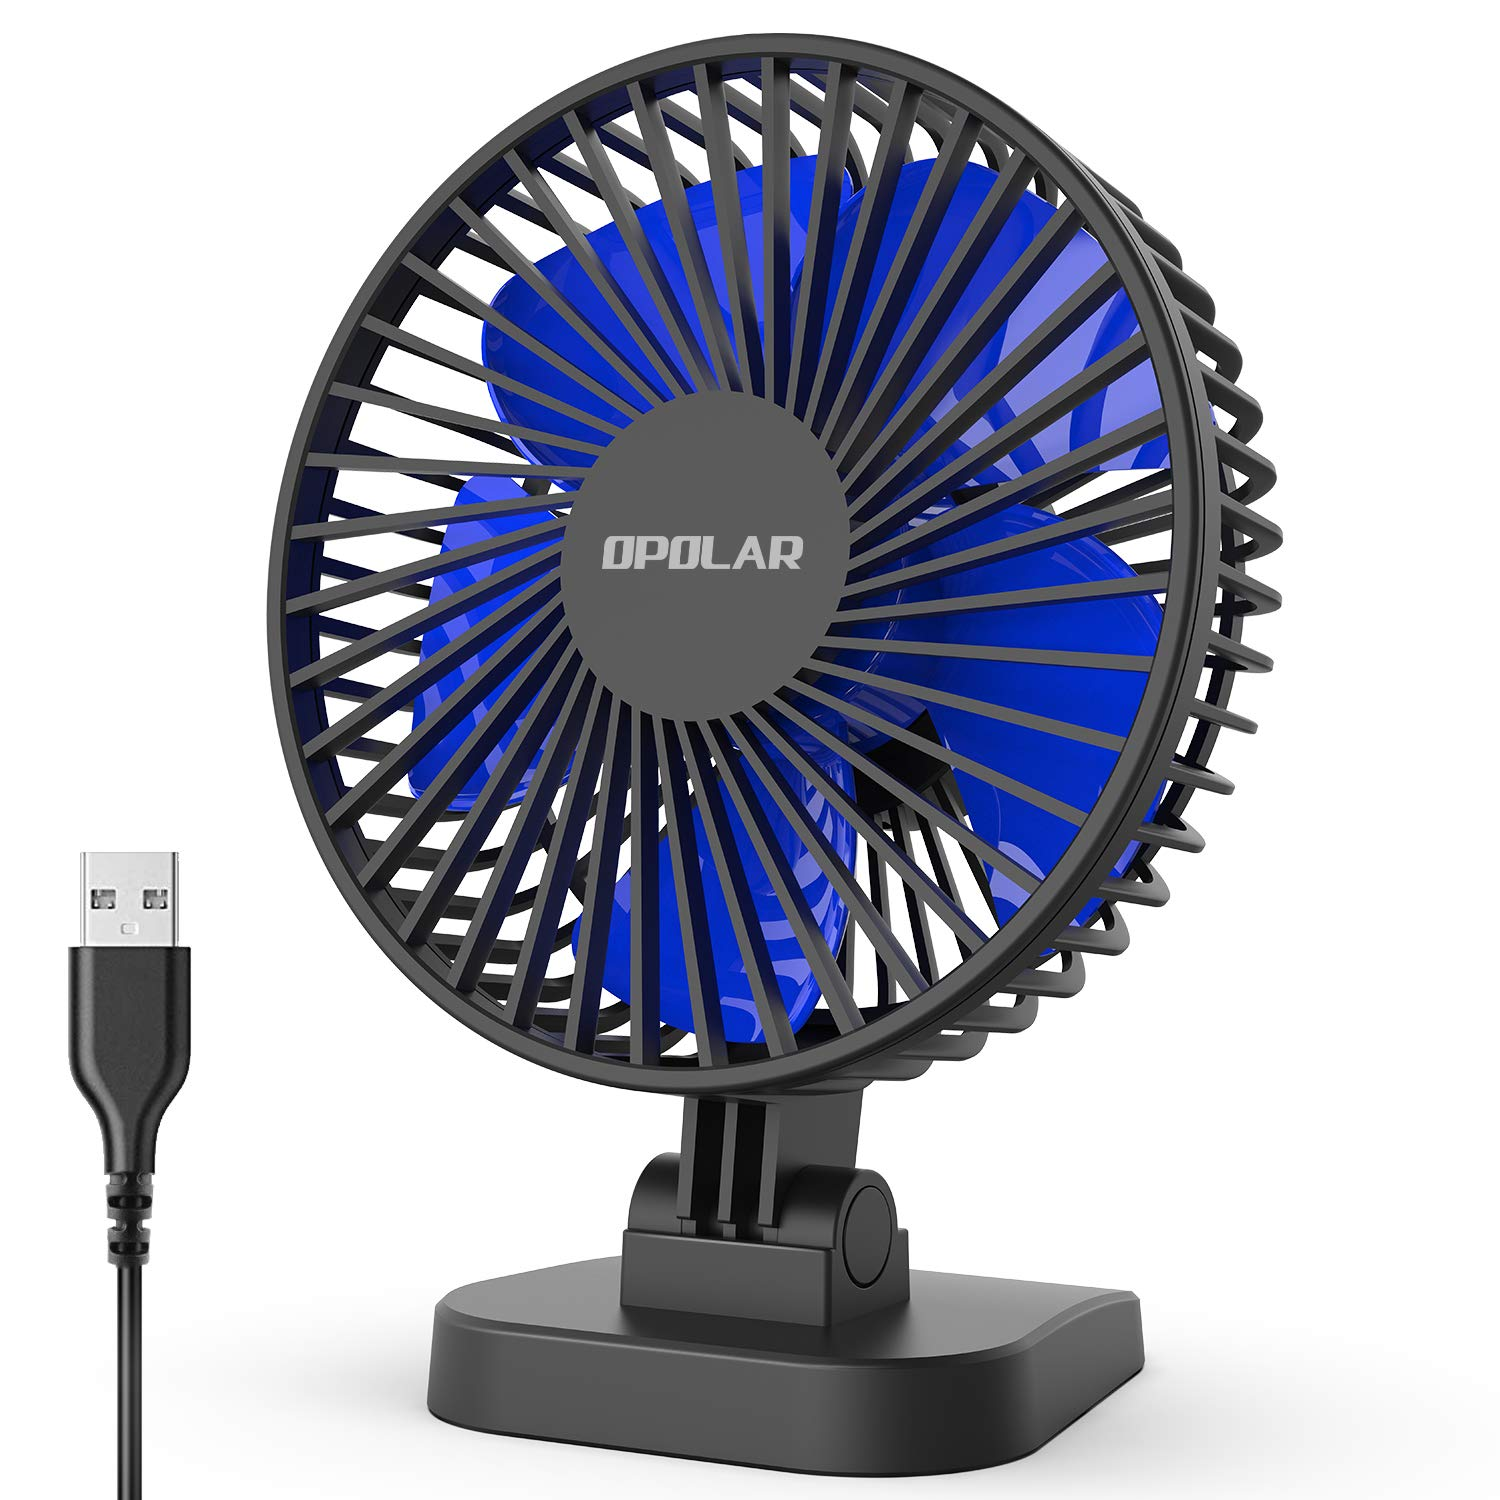 OPOLAR 2019 New Mini USB Desk Fan with 3 Speeds, Strong Airflow but Whisper Quiet, 40° Adjustable Tilt Angle for Better Cooling, Perfect Portable Personal Fan for Desktop Office Table